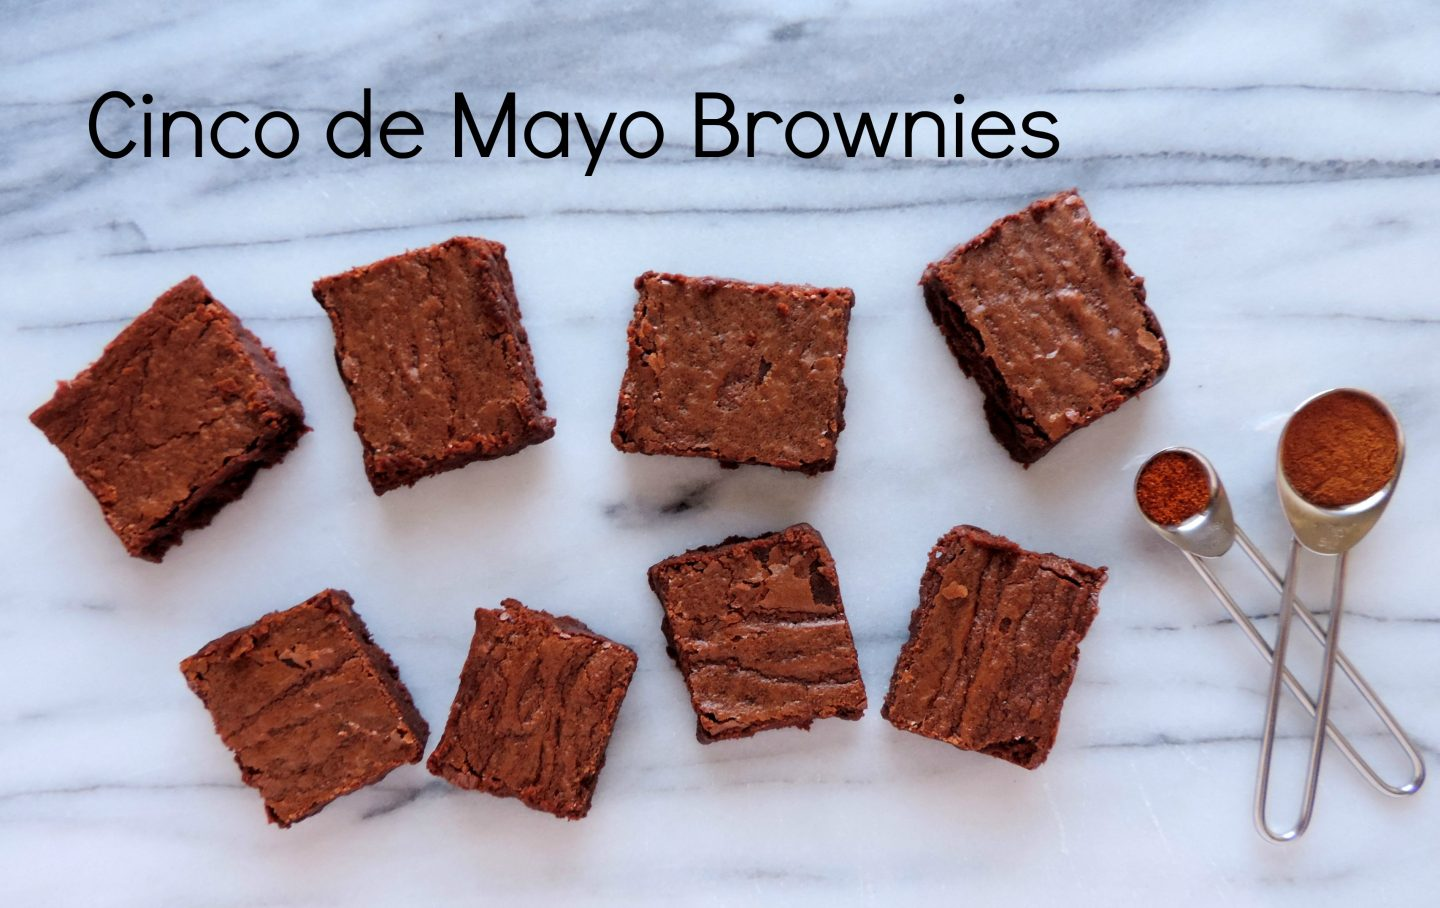 Cinco de Mayo Brownies